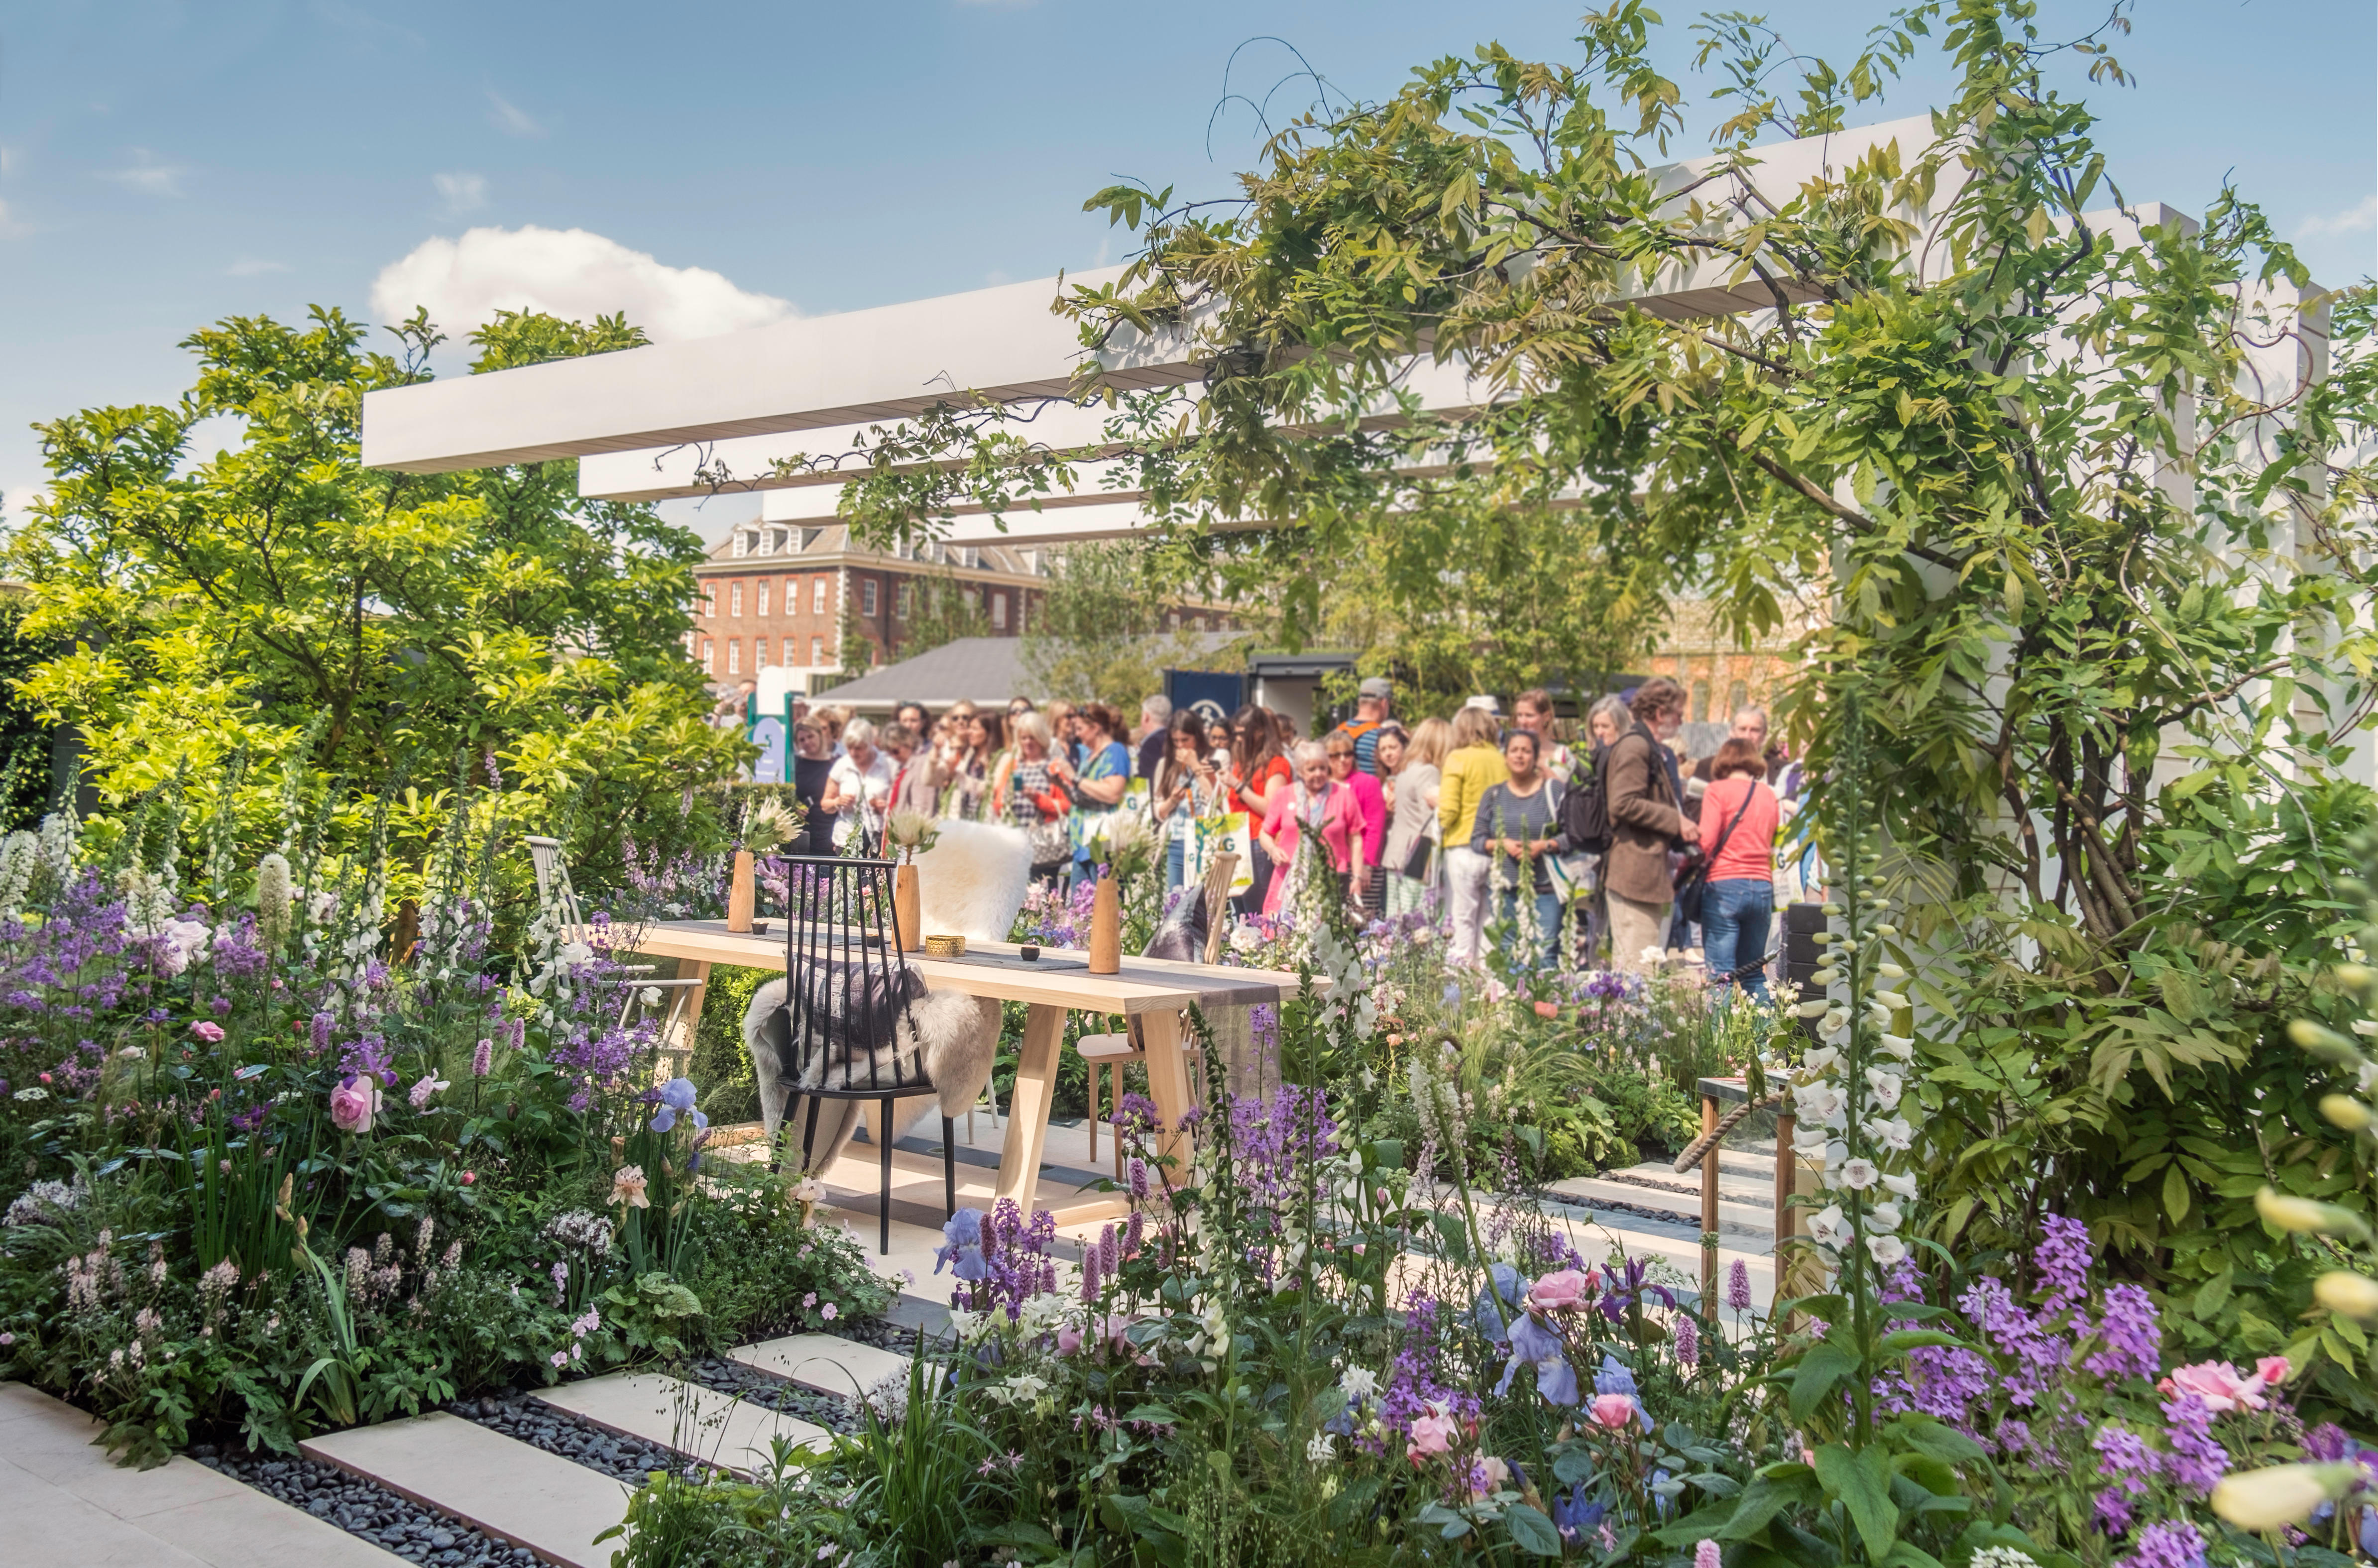 RHS Chelsea Flower Show moved to September for first time in 108 years - Country Life